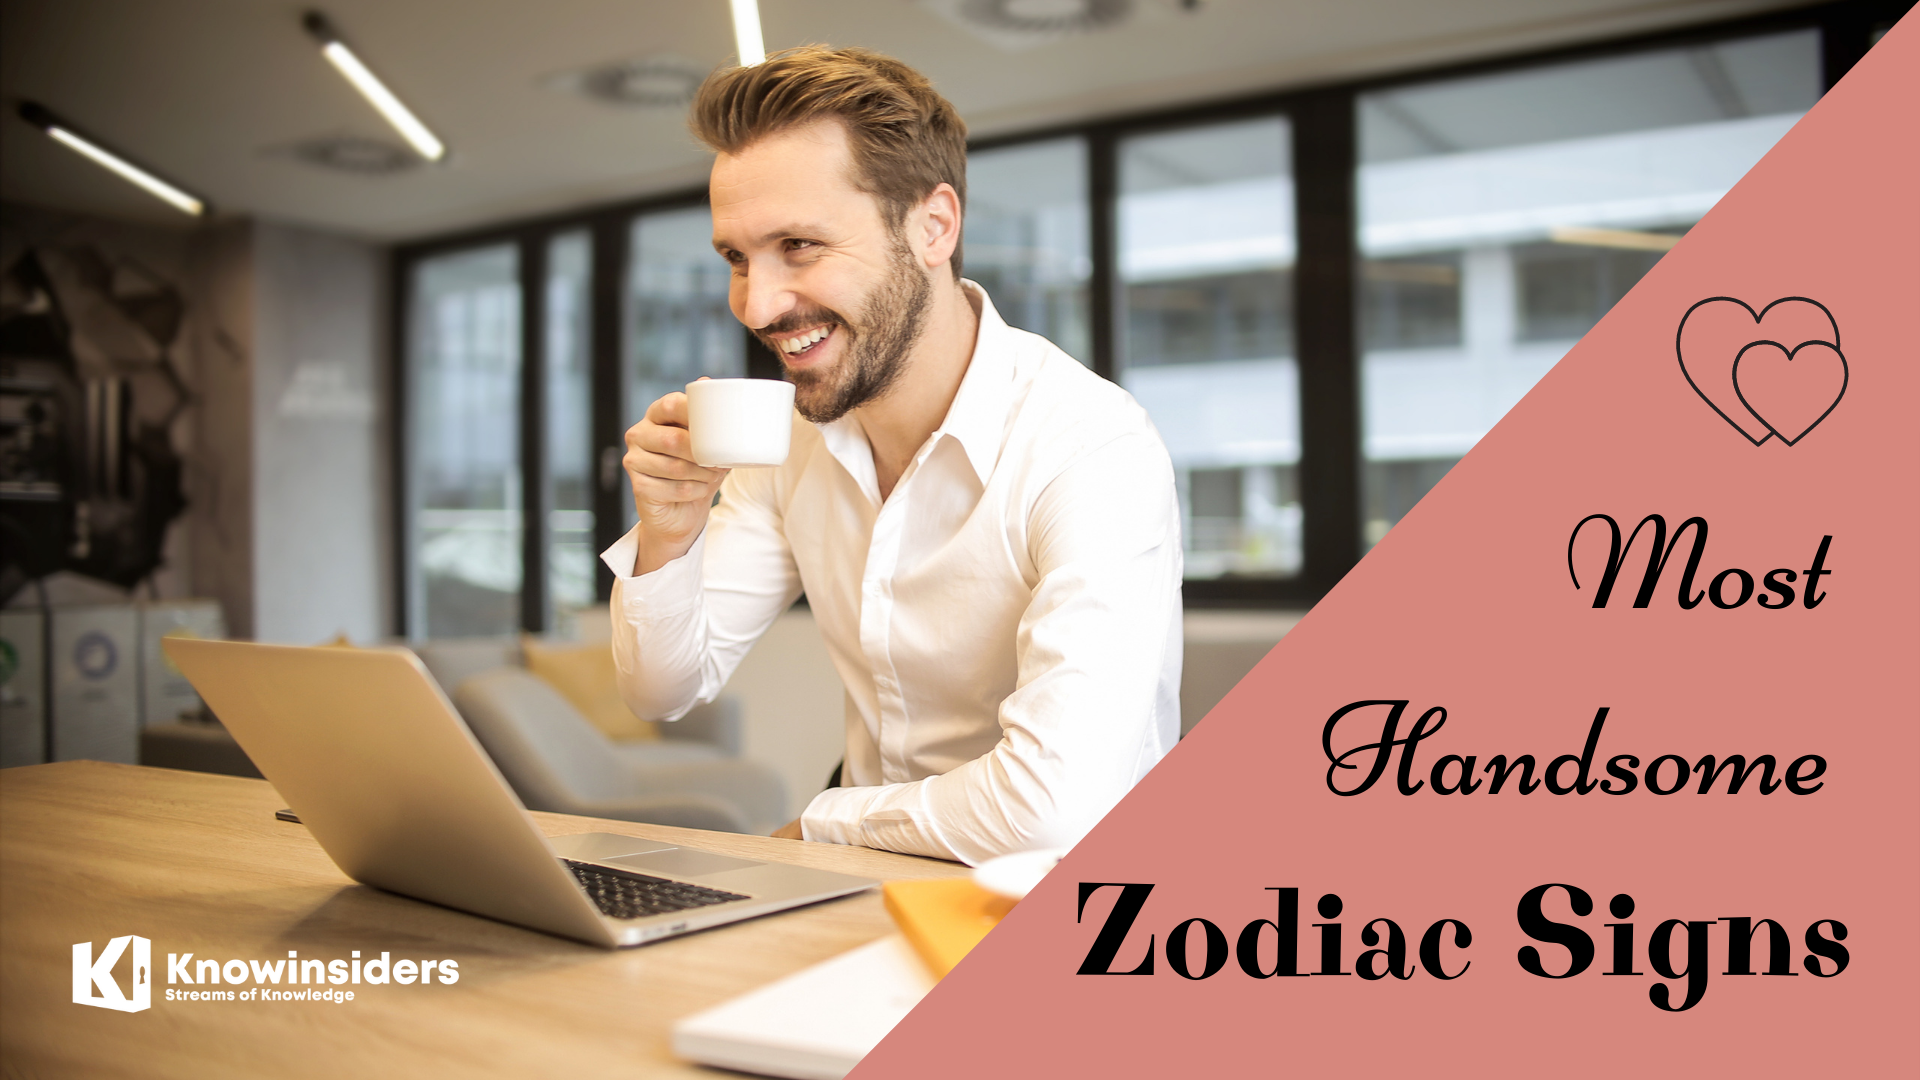 Top 5 Most Handsome Zodiac Signs According To Astrology